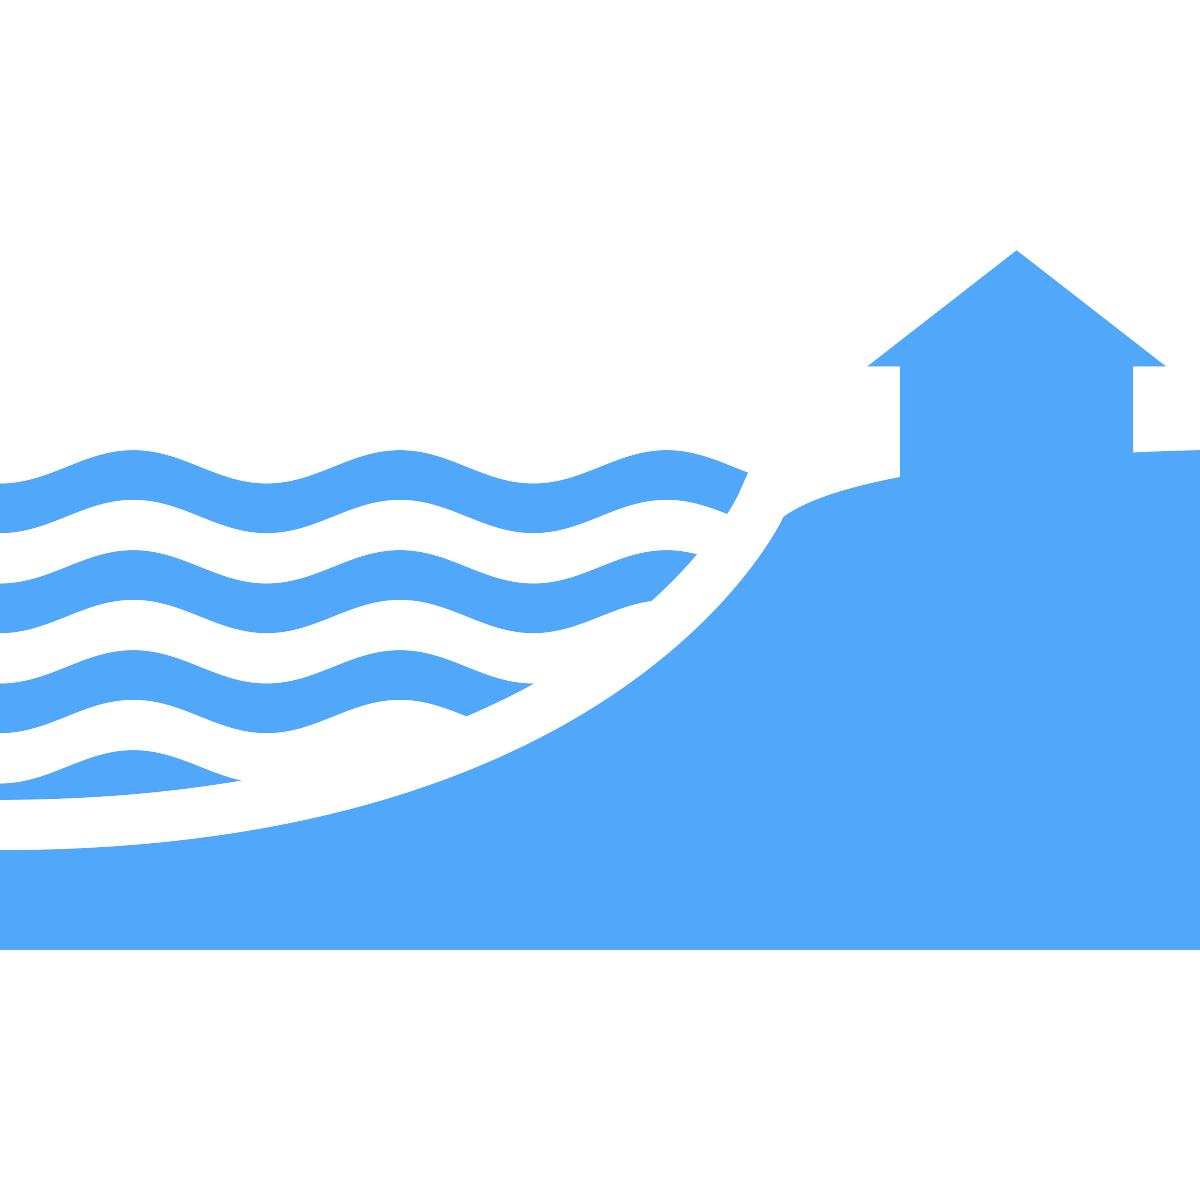 Hazards icon - rising water at a coastline